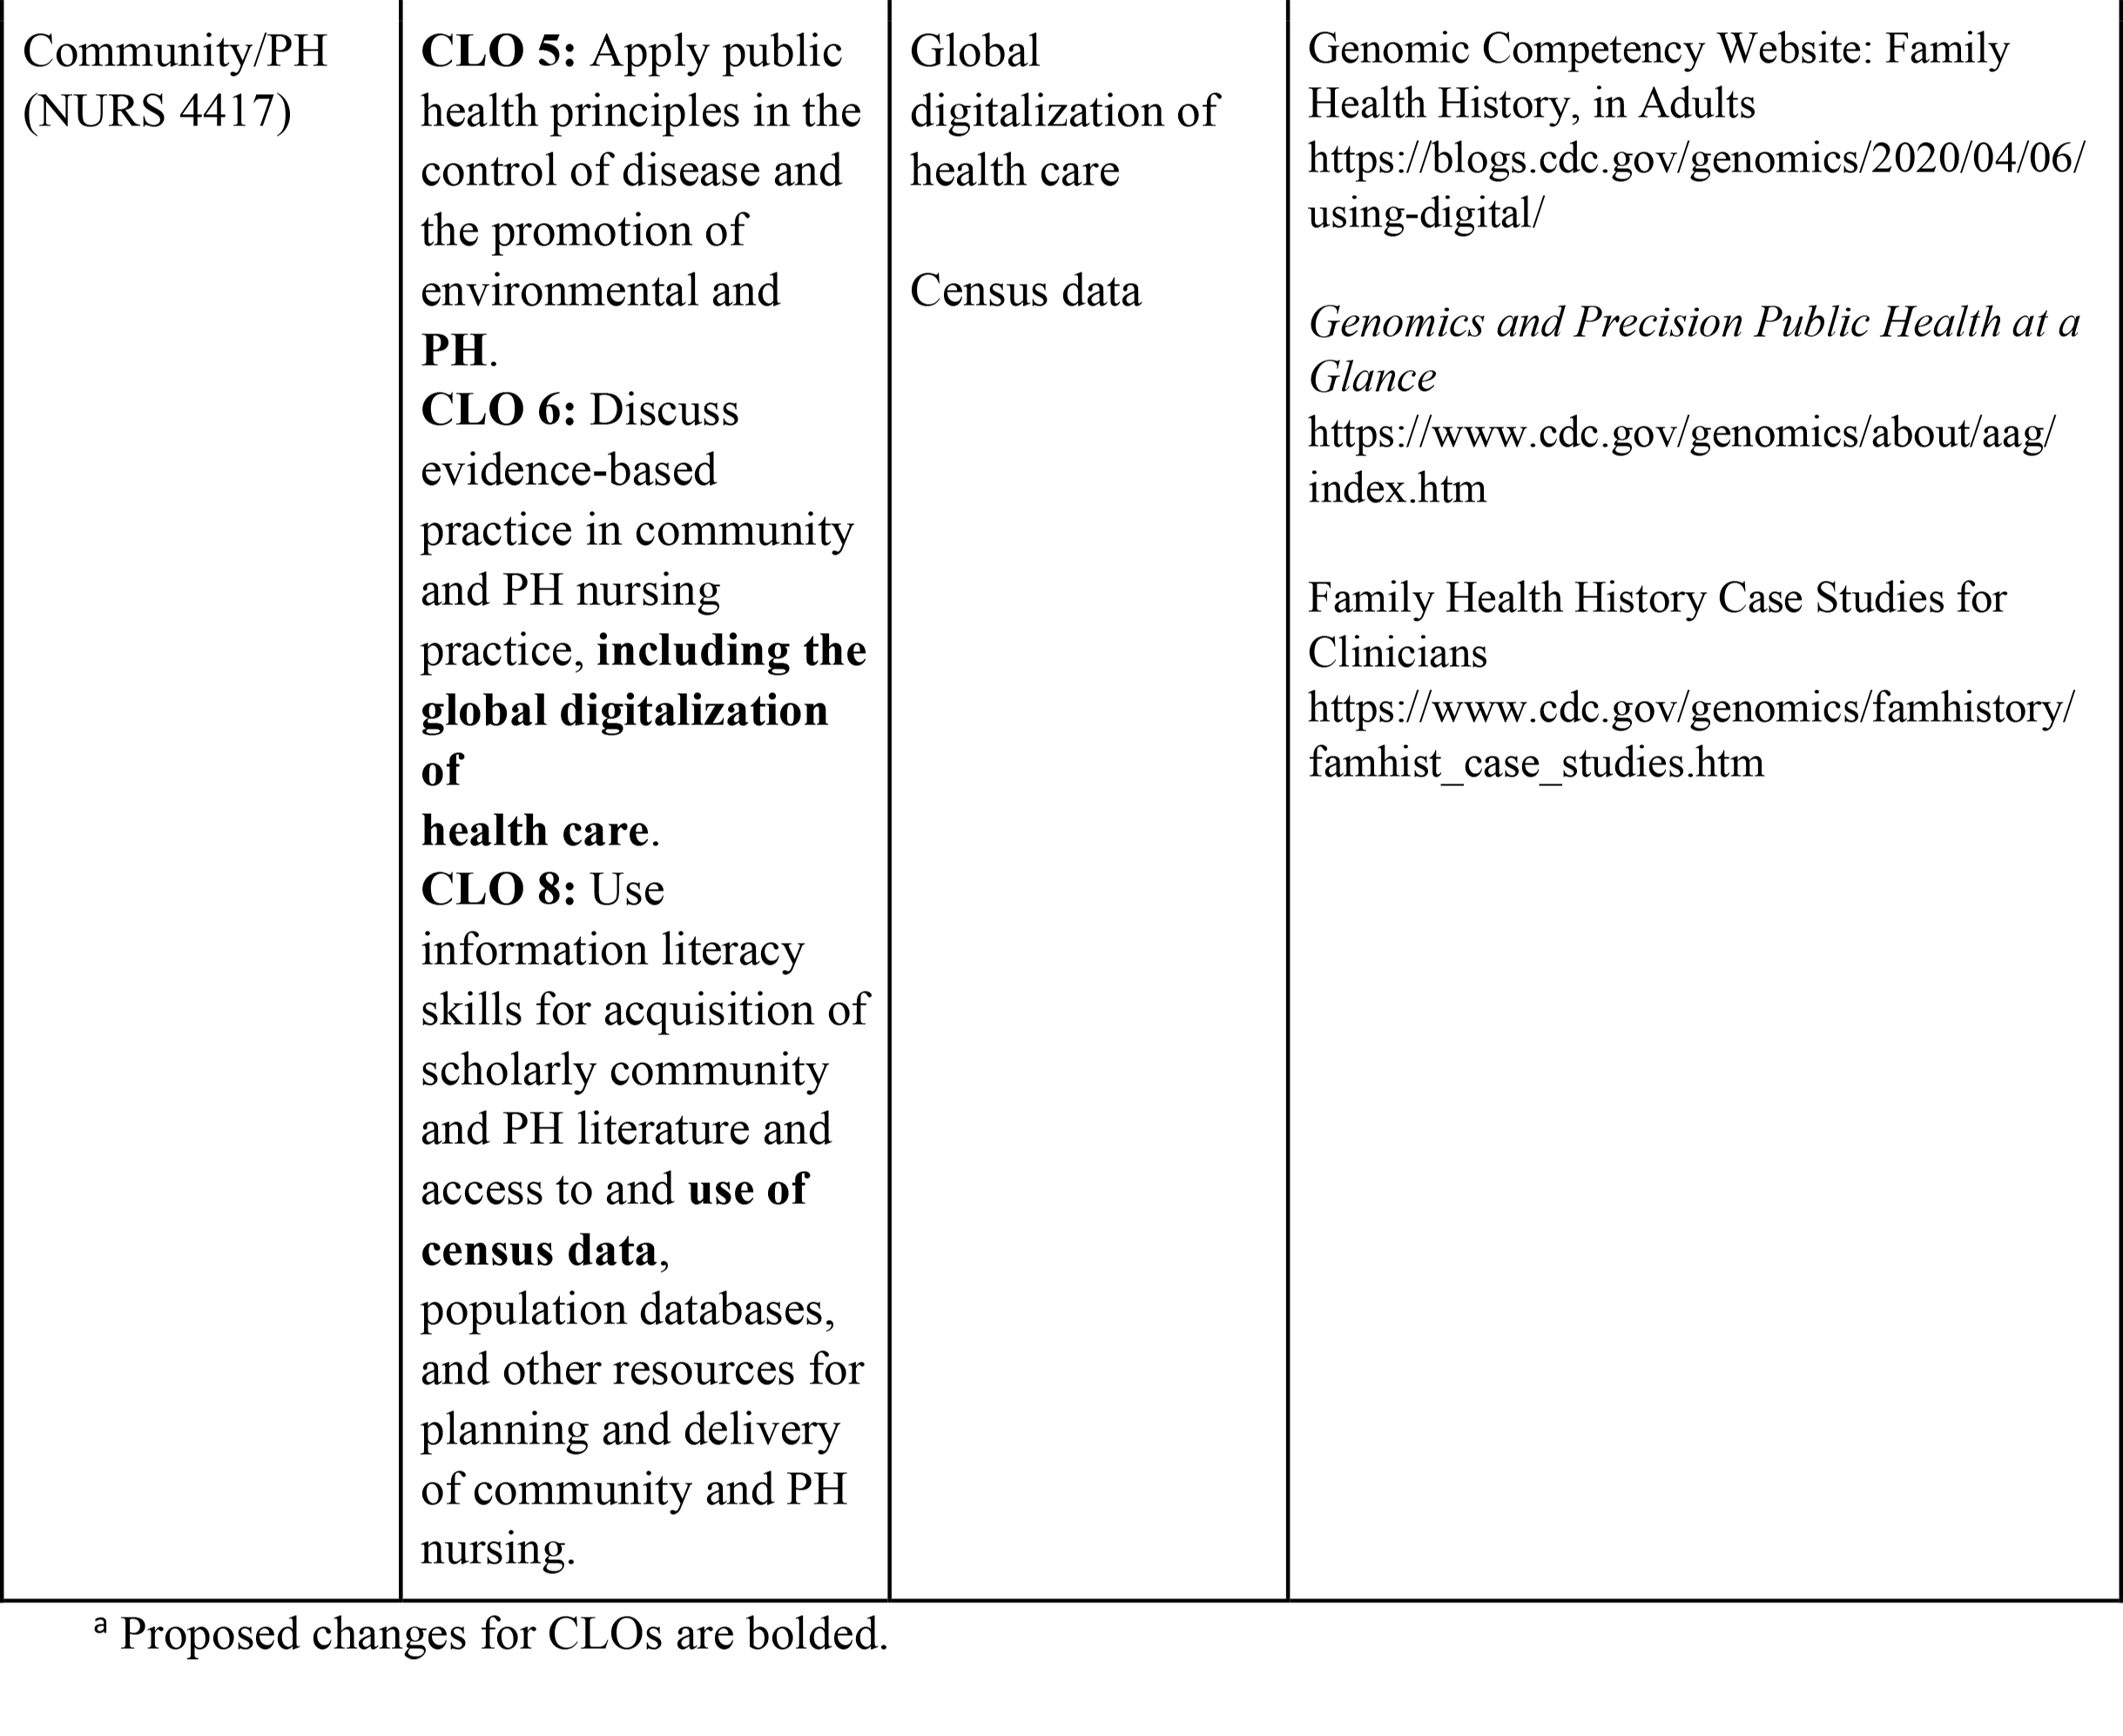 Proposed Changes to Integrate Precision Health (PH) in Six Courses